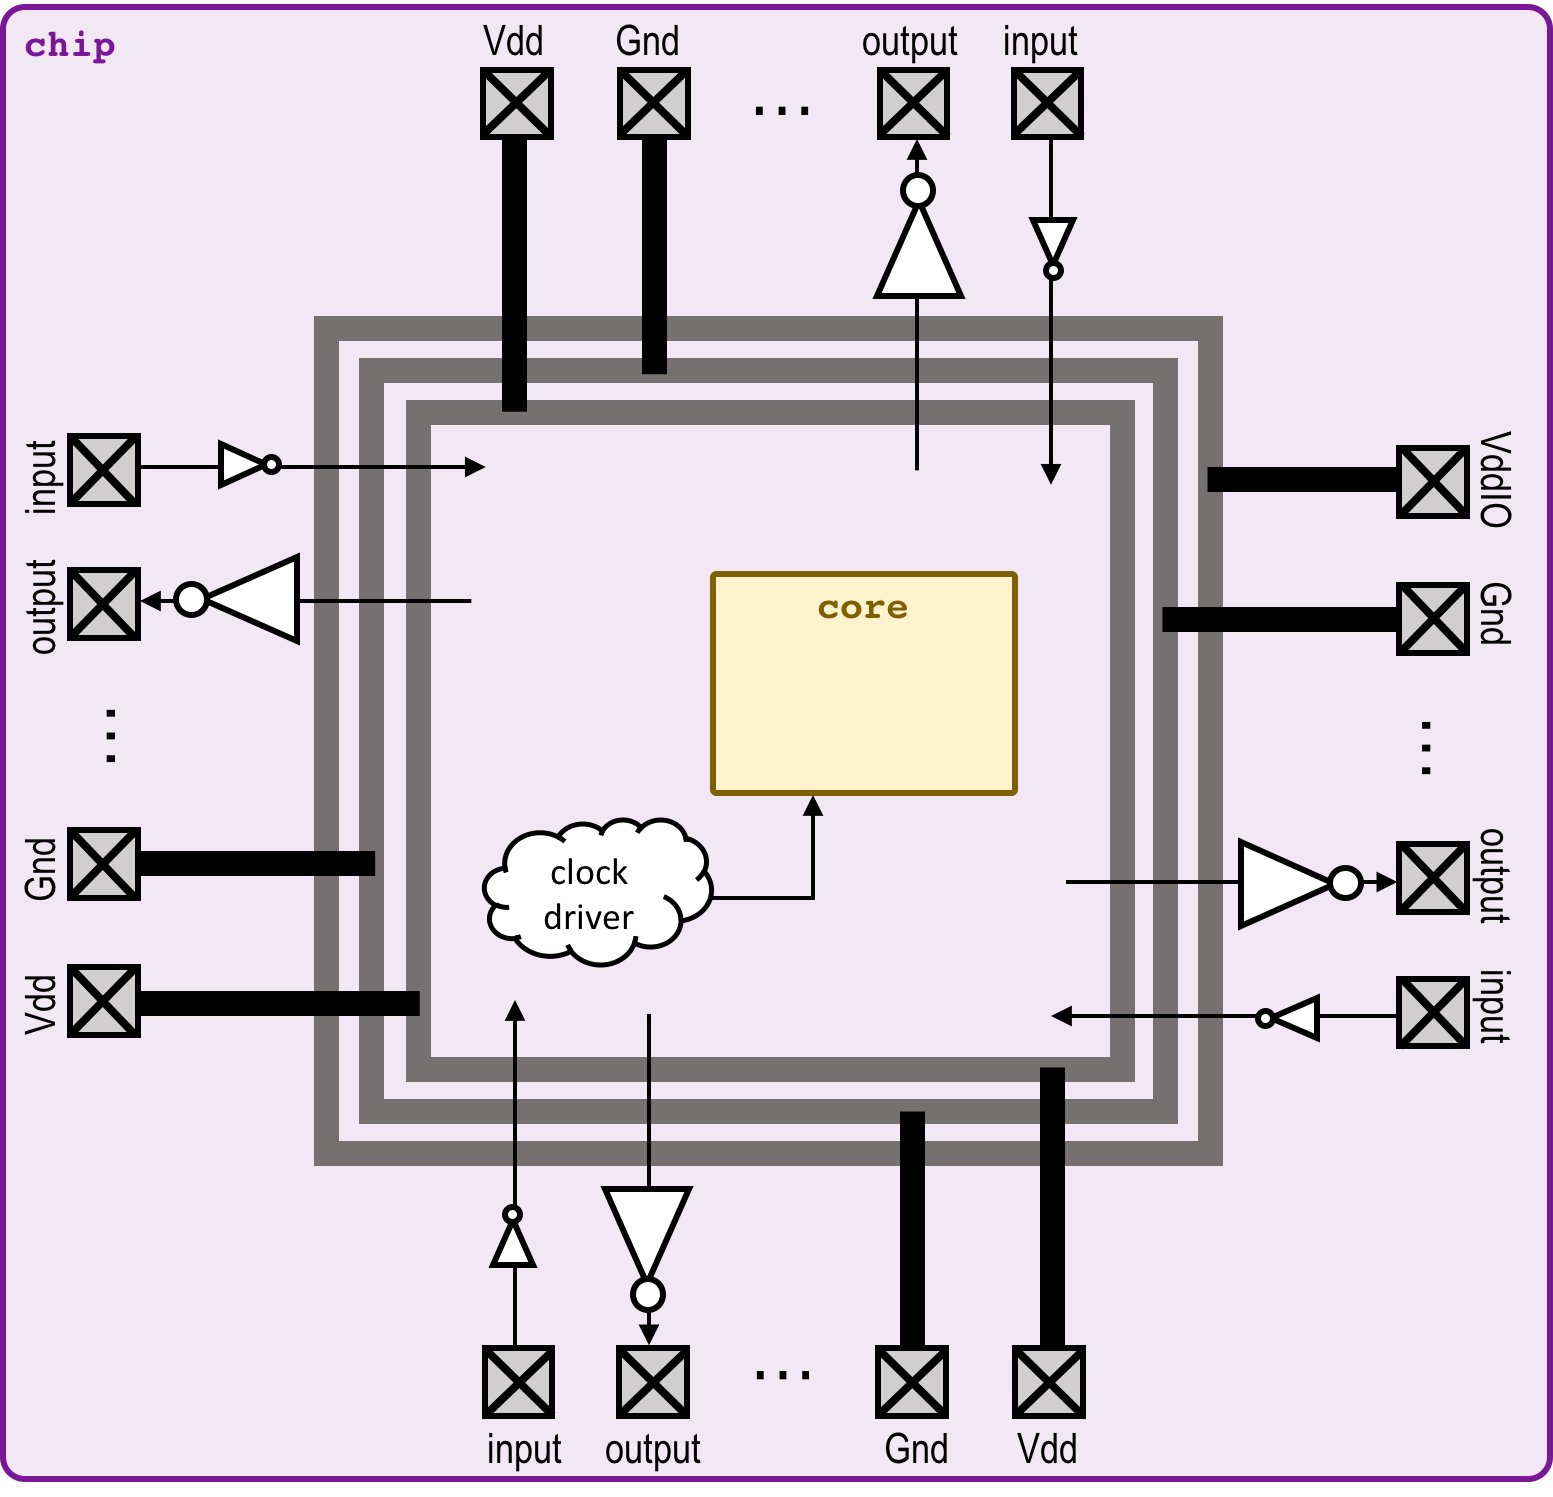 Eec 116 Vlsi Design Final Project Hall Of Fame Block Diagram Io Chip